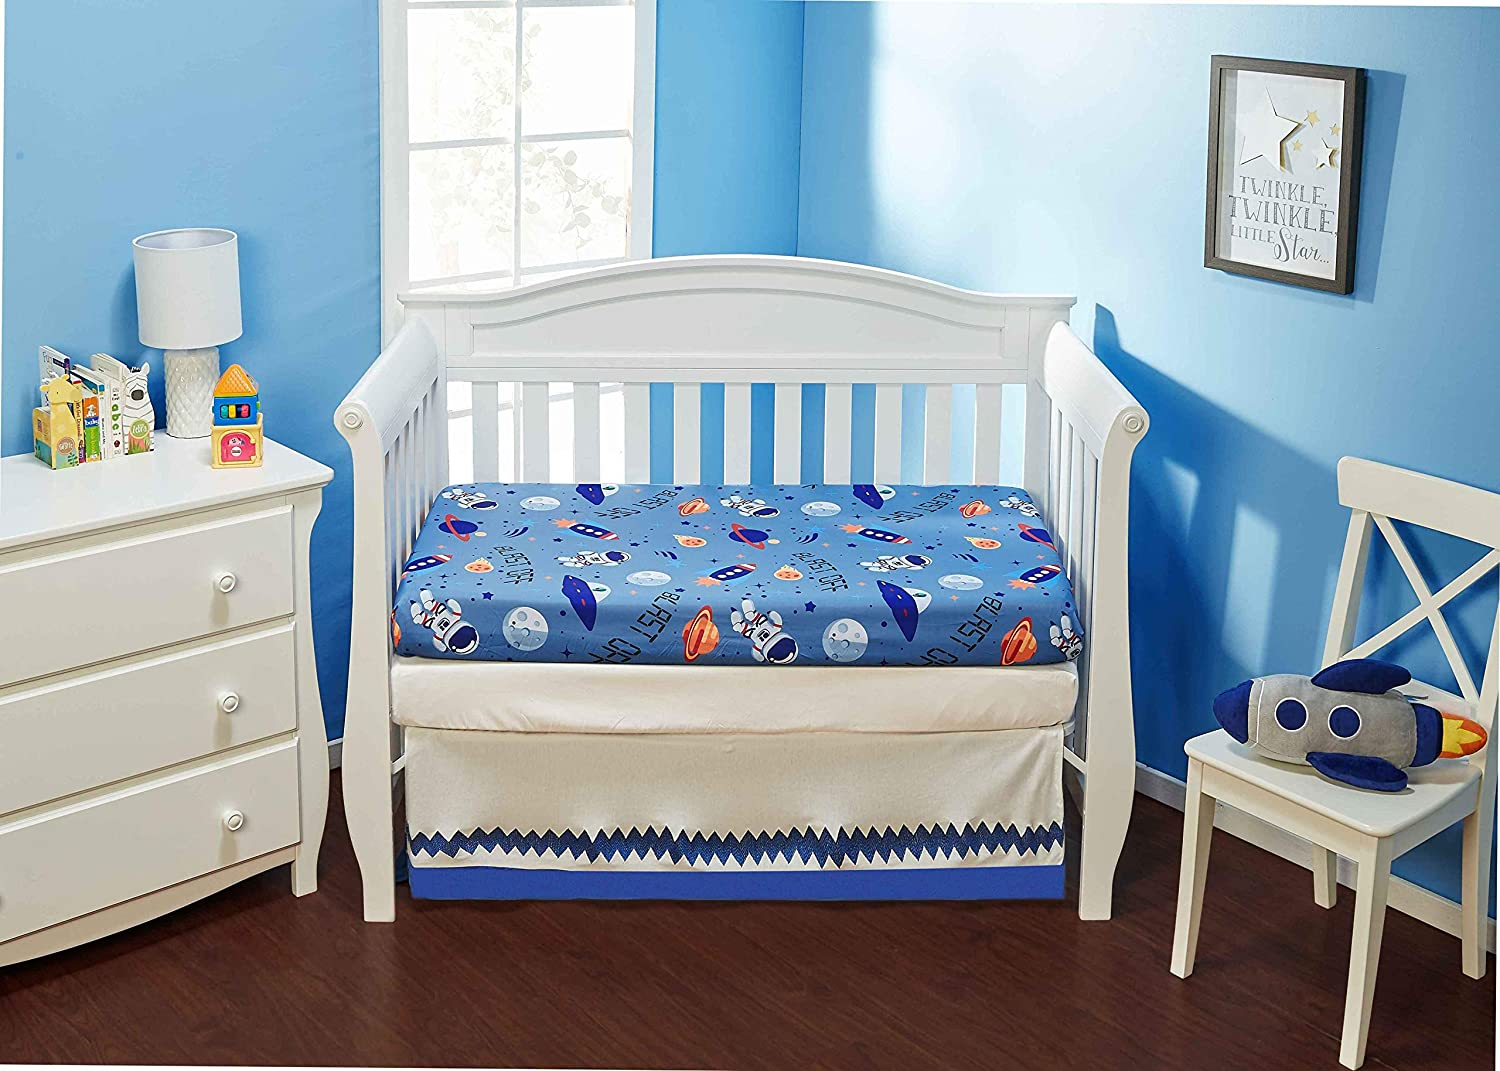 EVERYDAY KIDS 2 Pack Fitted Boys Crib Sheet, 100% Soft Microfiber, Breathable and Hypoallergenic Baby Sheet, Fits Standard Size Crib Mattress 28in x 52in, Nursery Sheet - Space/White